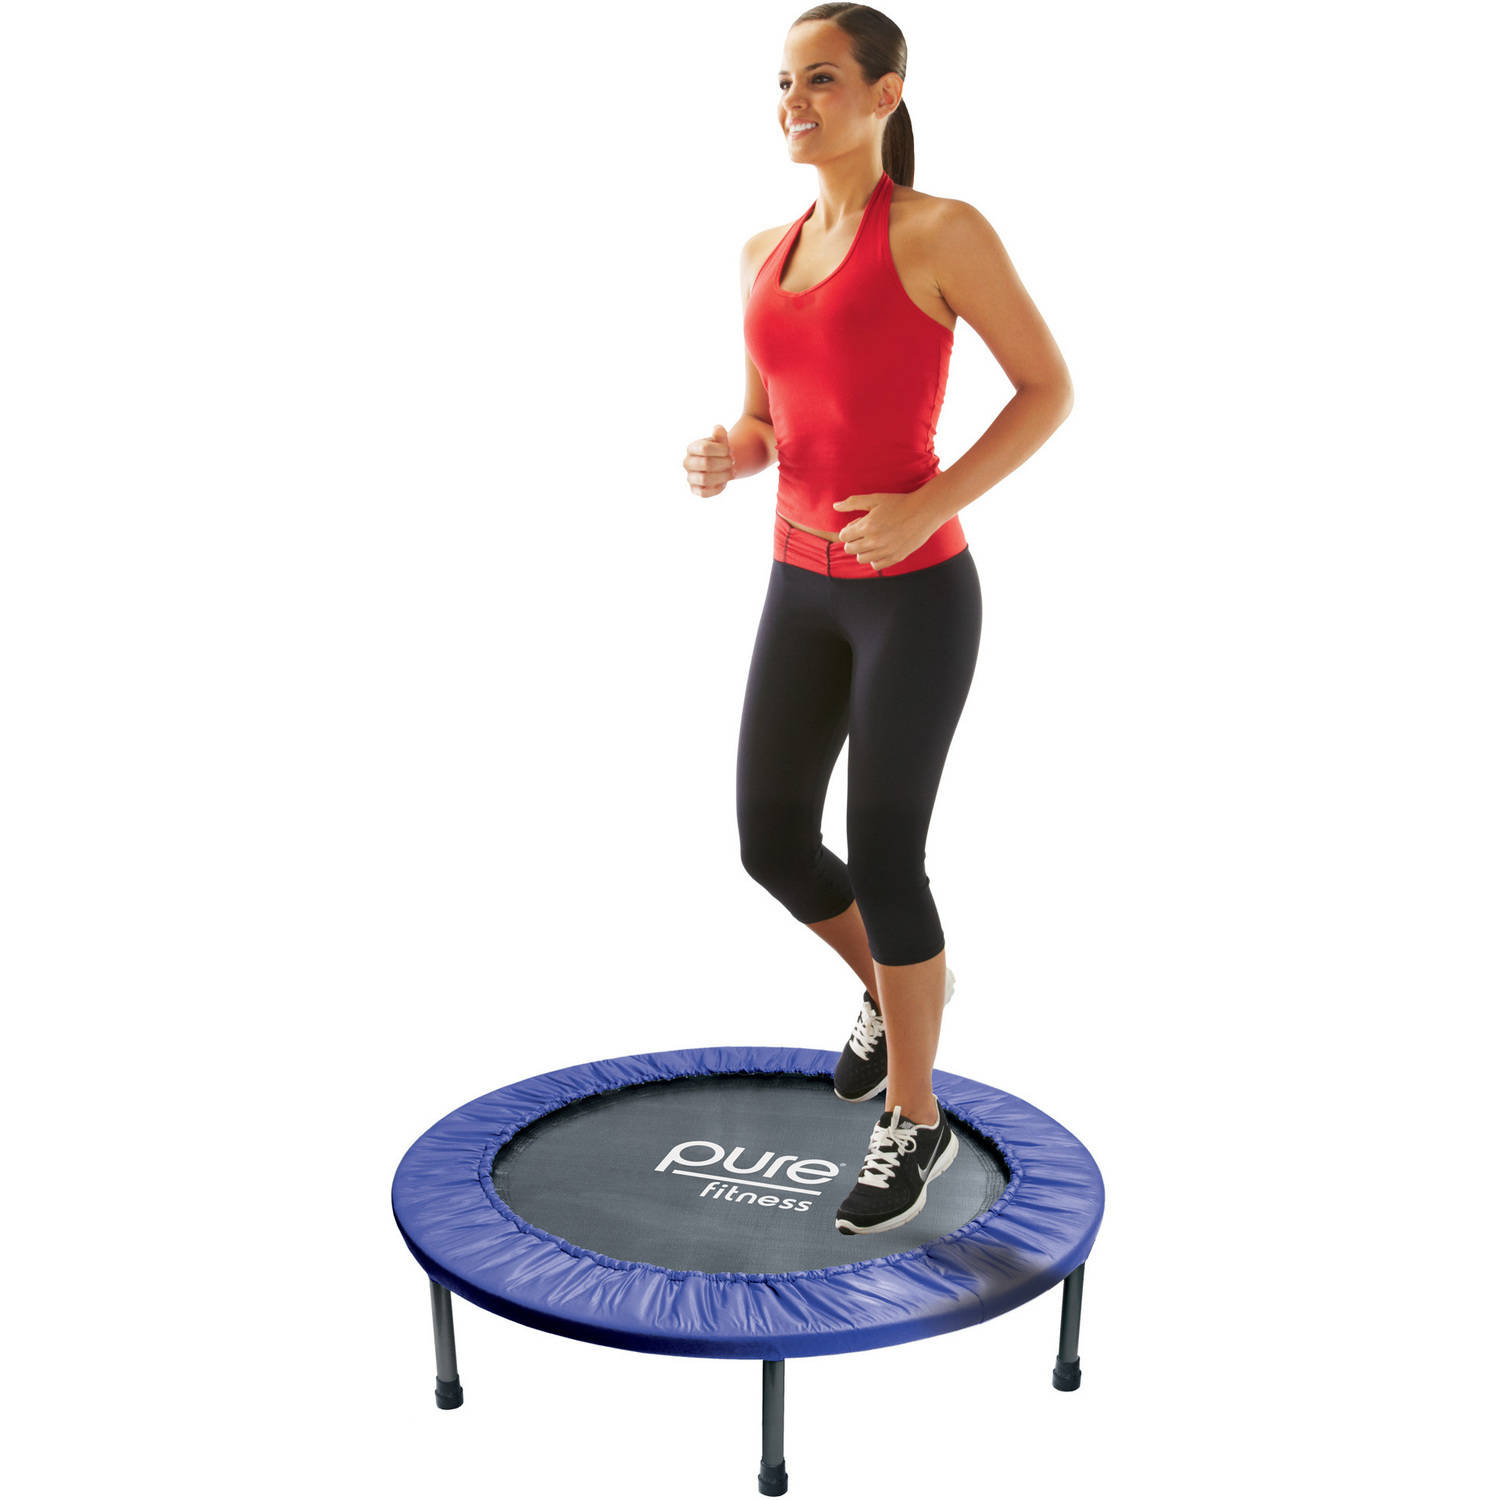 Pure Fitness 40-Inch Exercise Fitness Trampoline, Blue